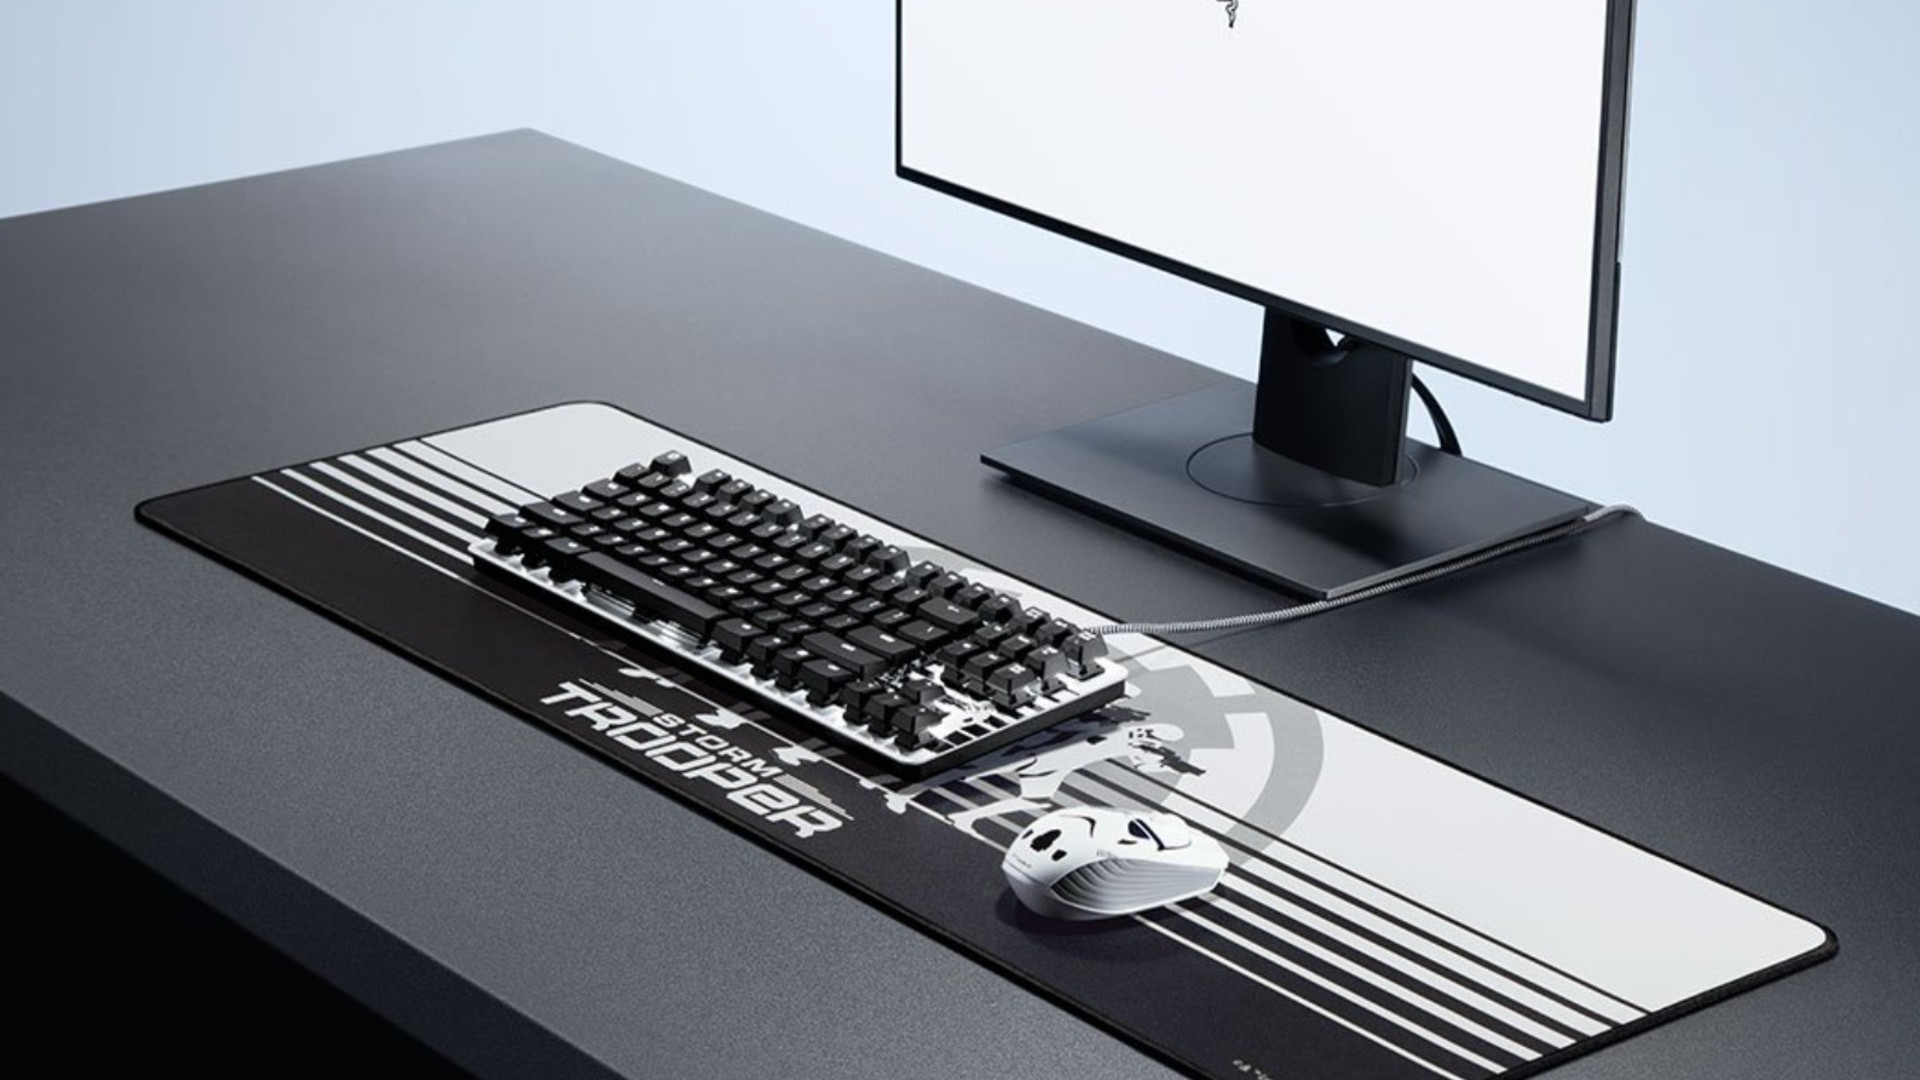 Razer's Valentine's sale includes a 31% discount on a stormtrooper keyboard